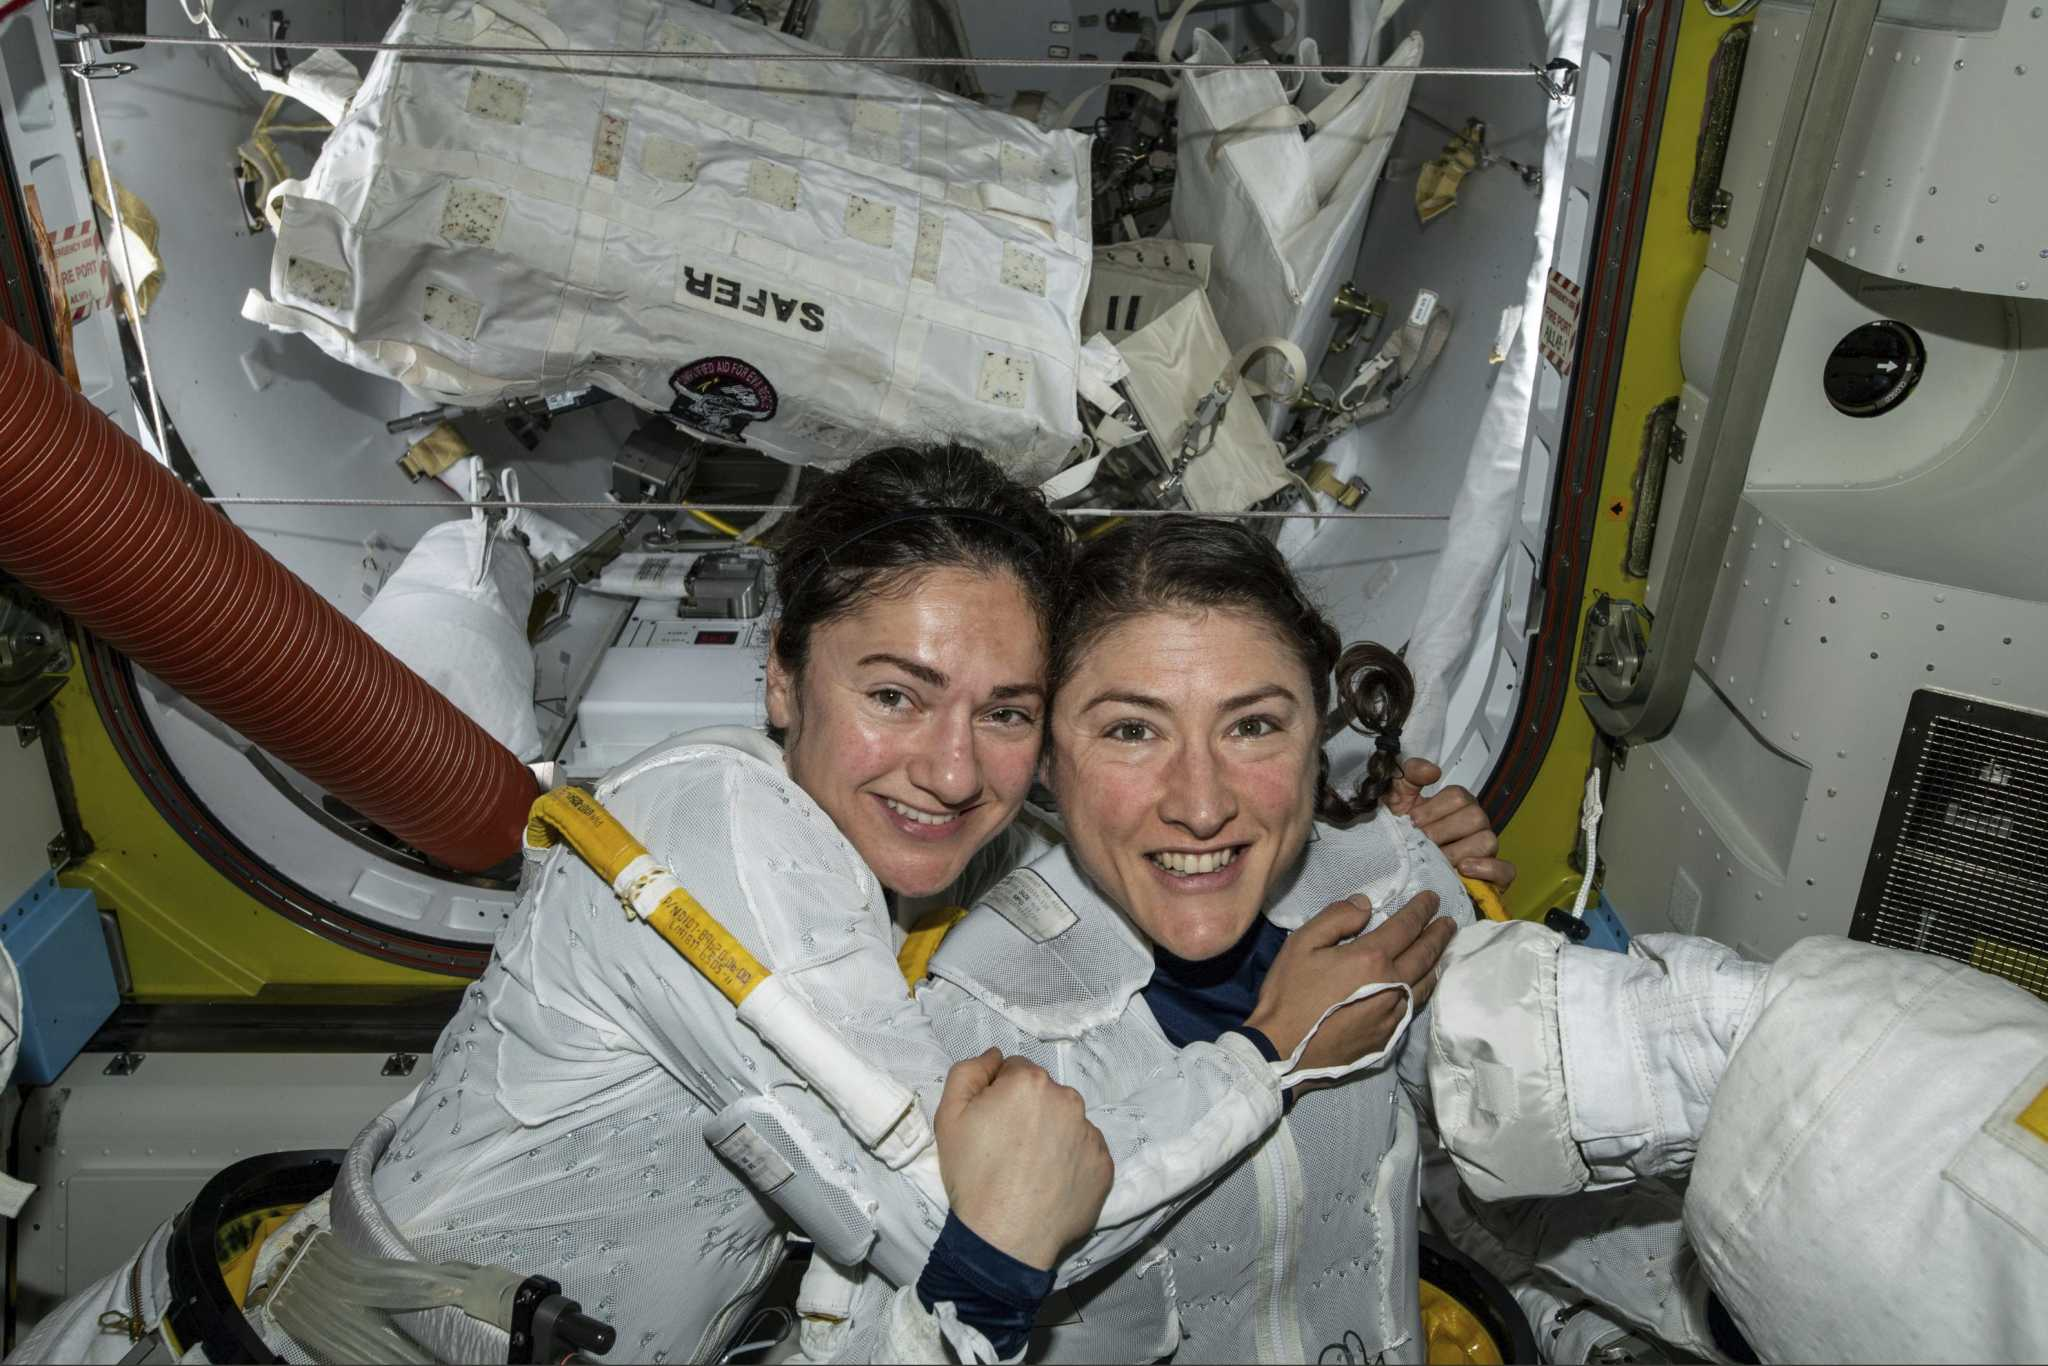 Opinion: The future of spaceflight is female